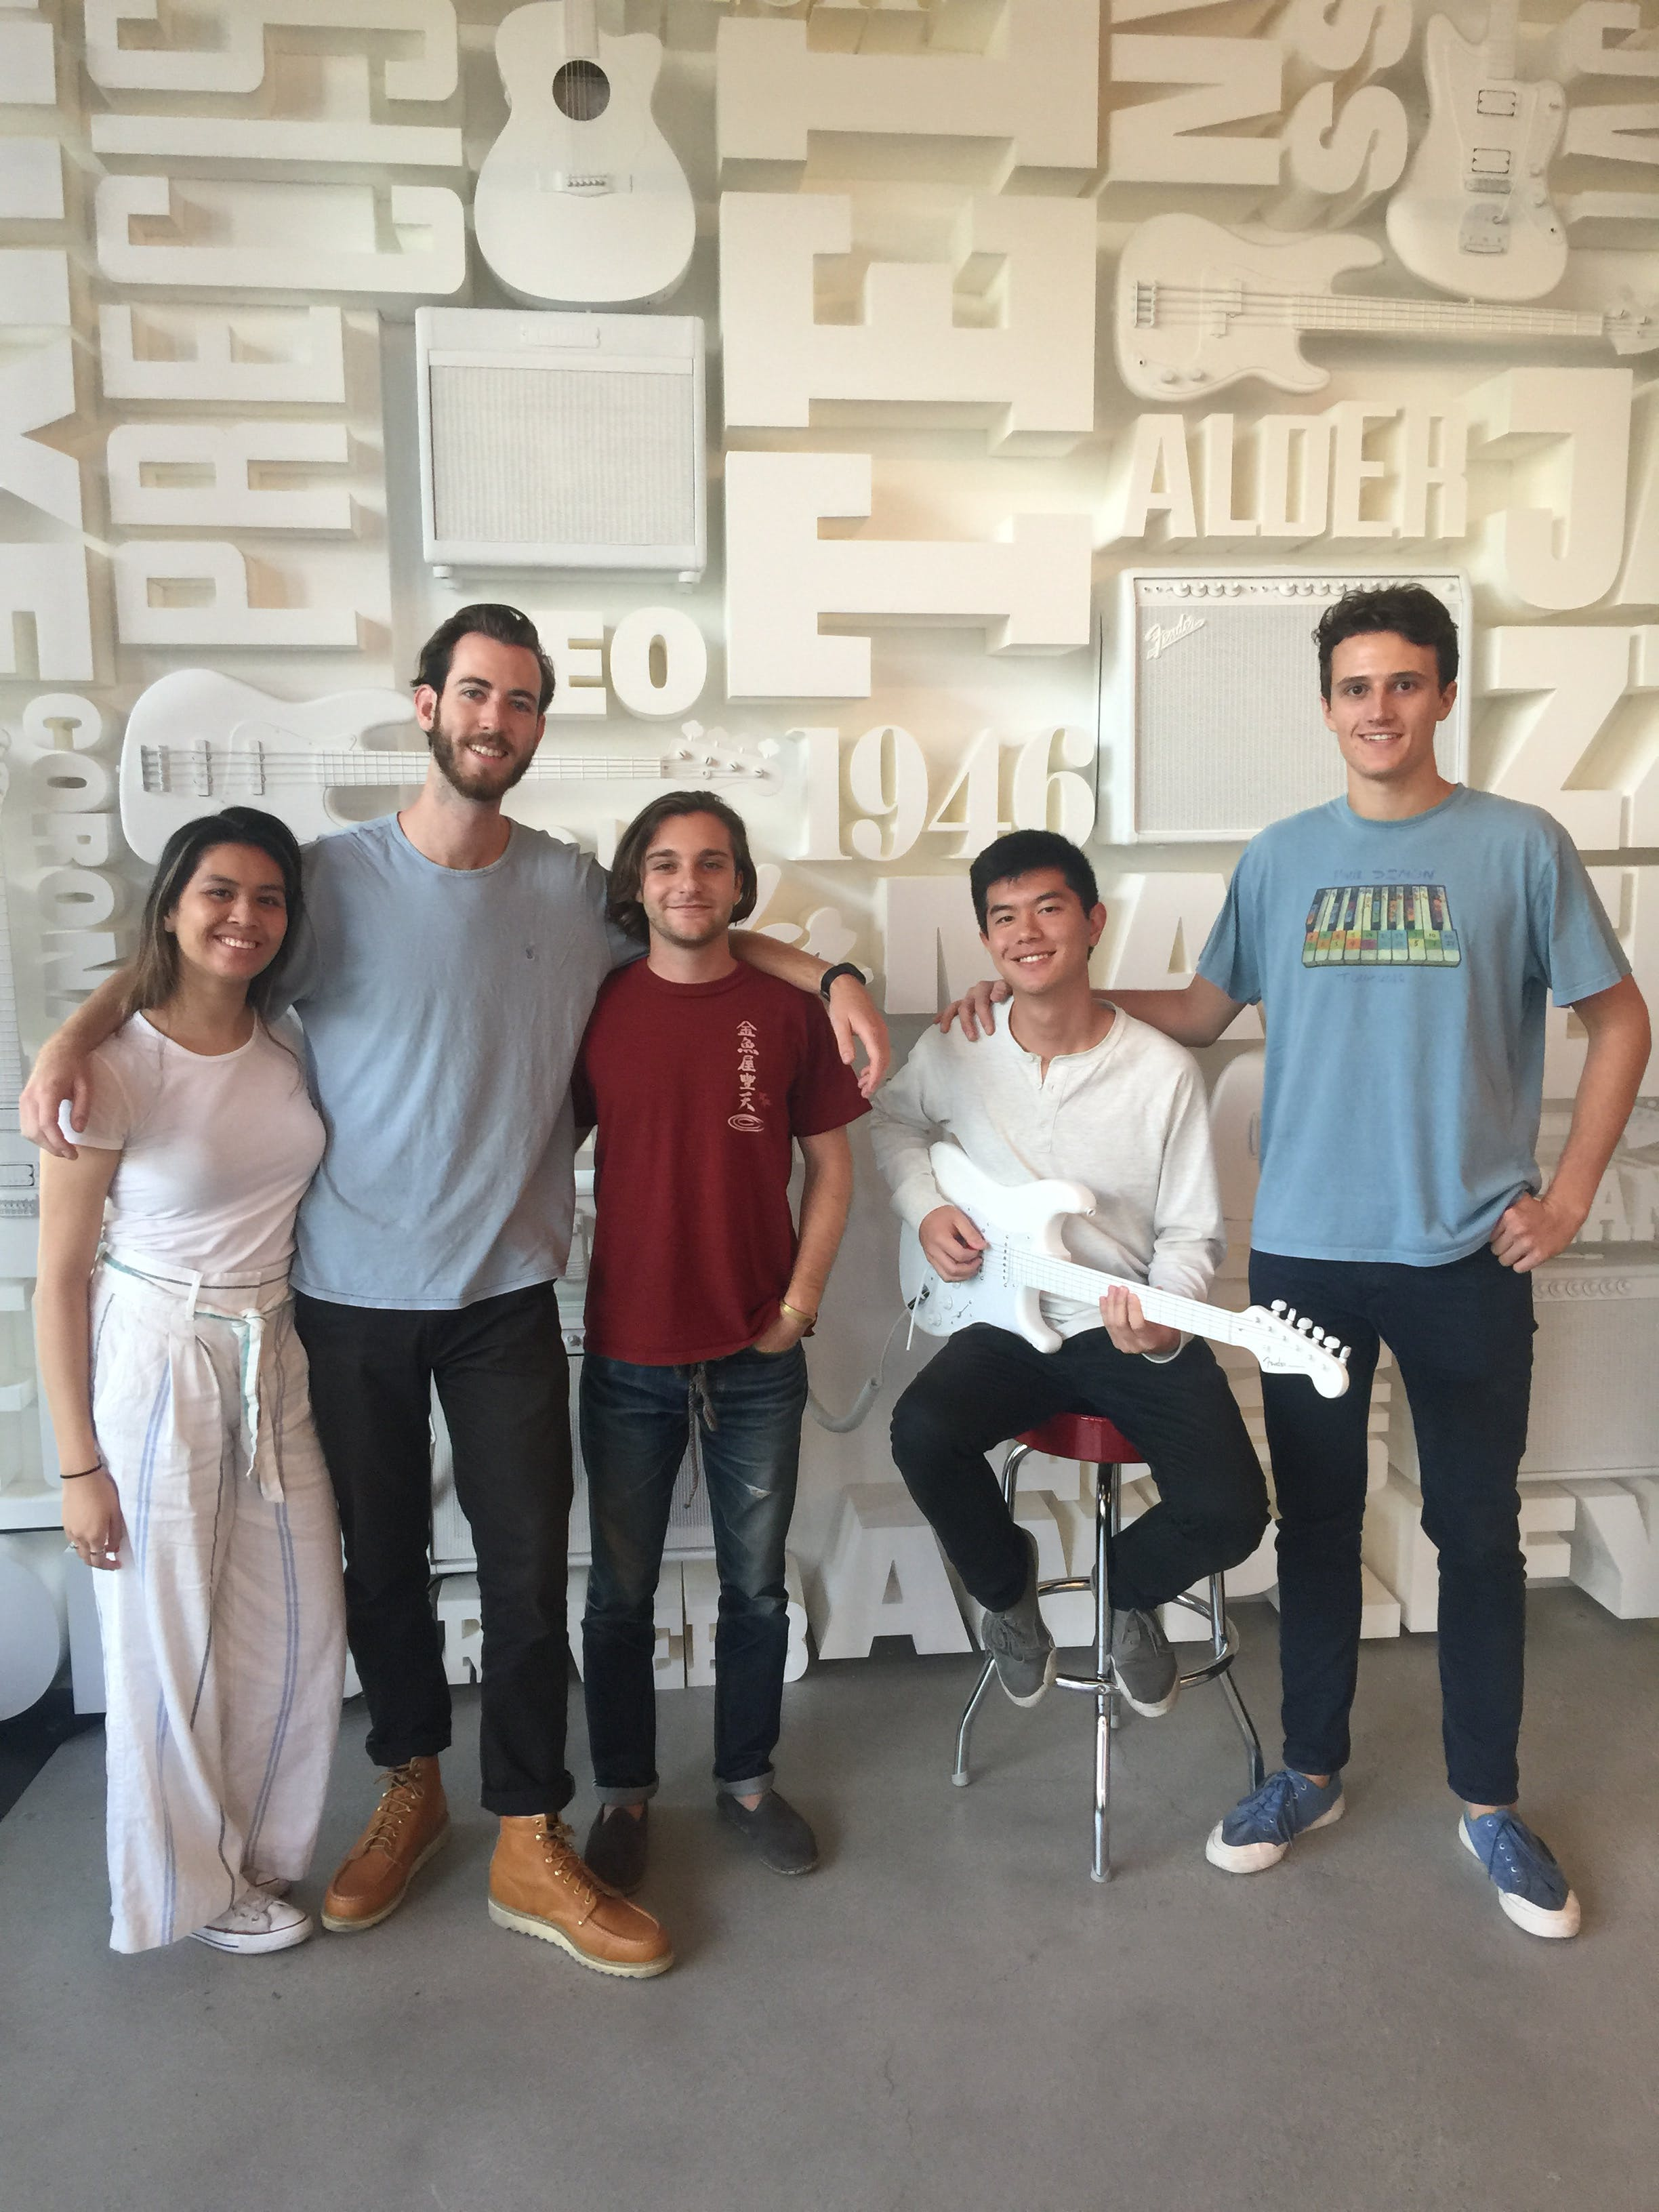 4 students standing in front of a wall of white guitars, one male sitting on stool holding white guitar